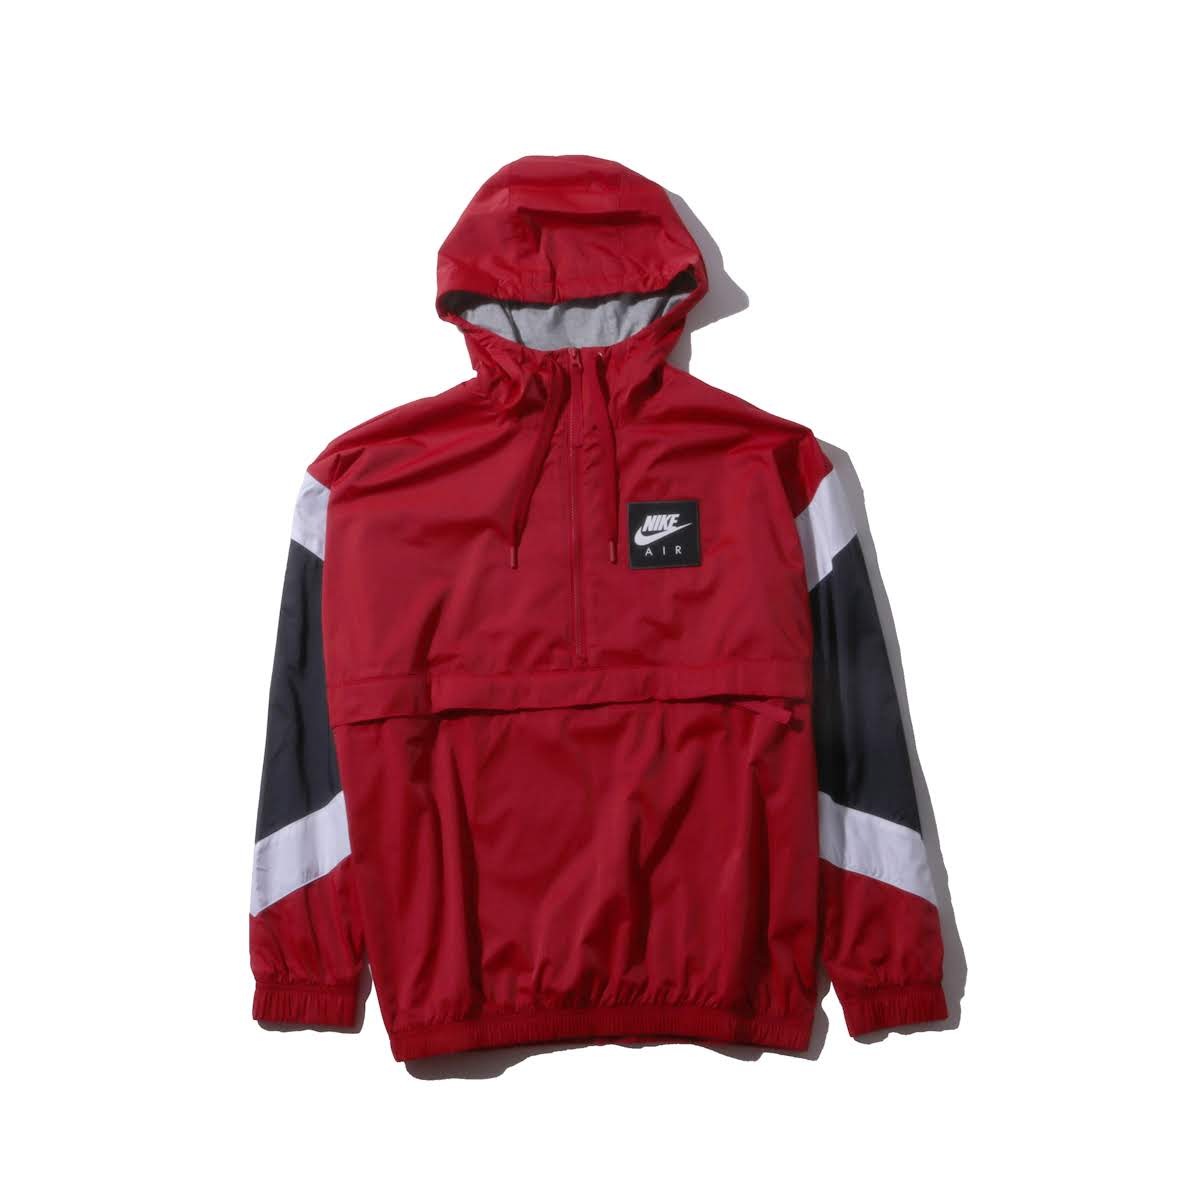 354b4a4ad51d Nike sportswear men s Woo the jacket of the V-shape adopt a panel